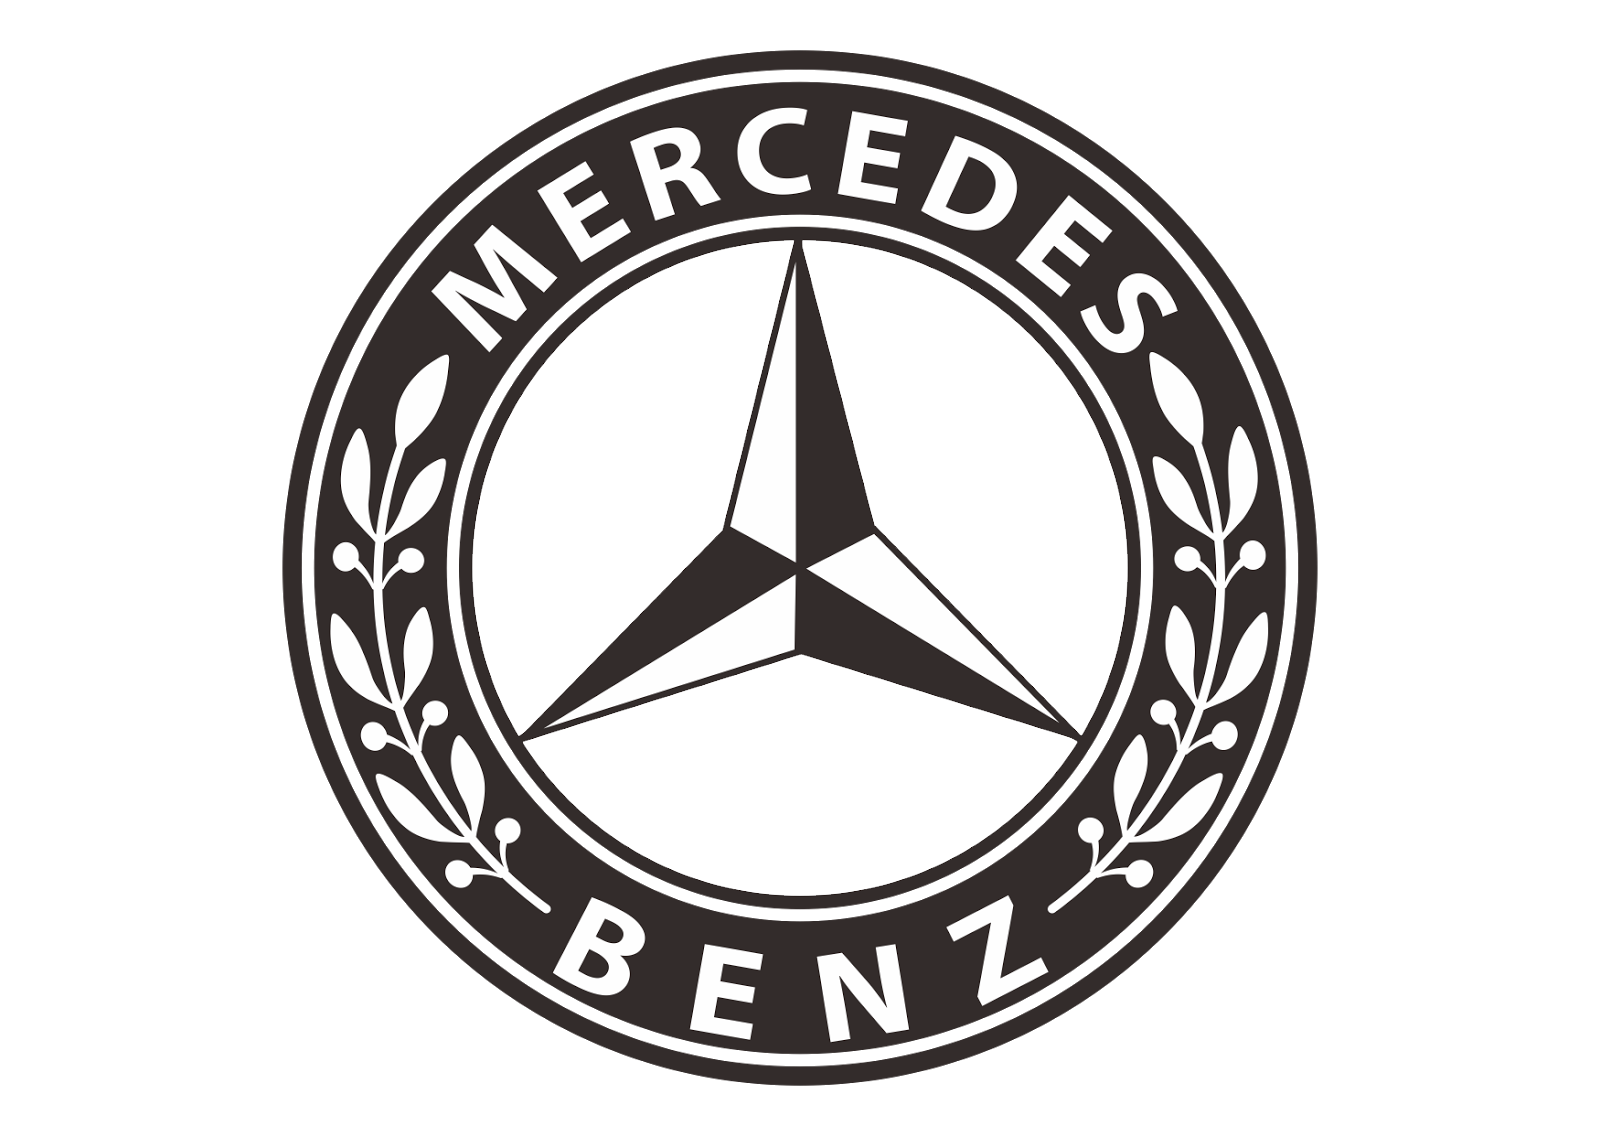 Abmessungen additionally 5mizr Mercedes Benz C220 96 Mercedes C220 Automatic besides 1997473 Need Help New Gas Tank Fuel together with Topic1862732 together with 187248 C32 Amg Brakes My W124 3. on mercedes benz w124